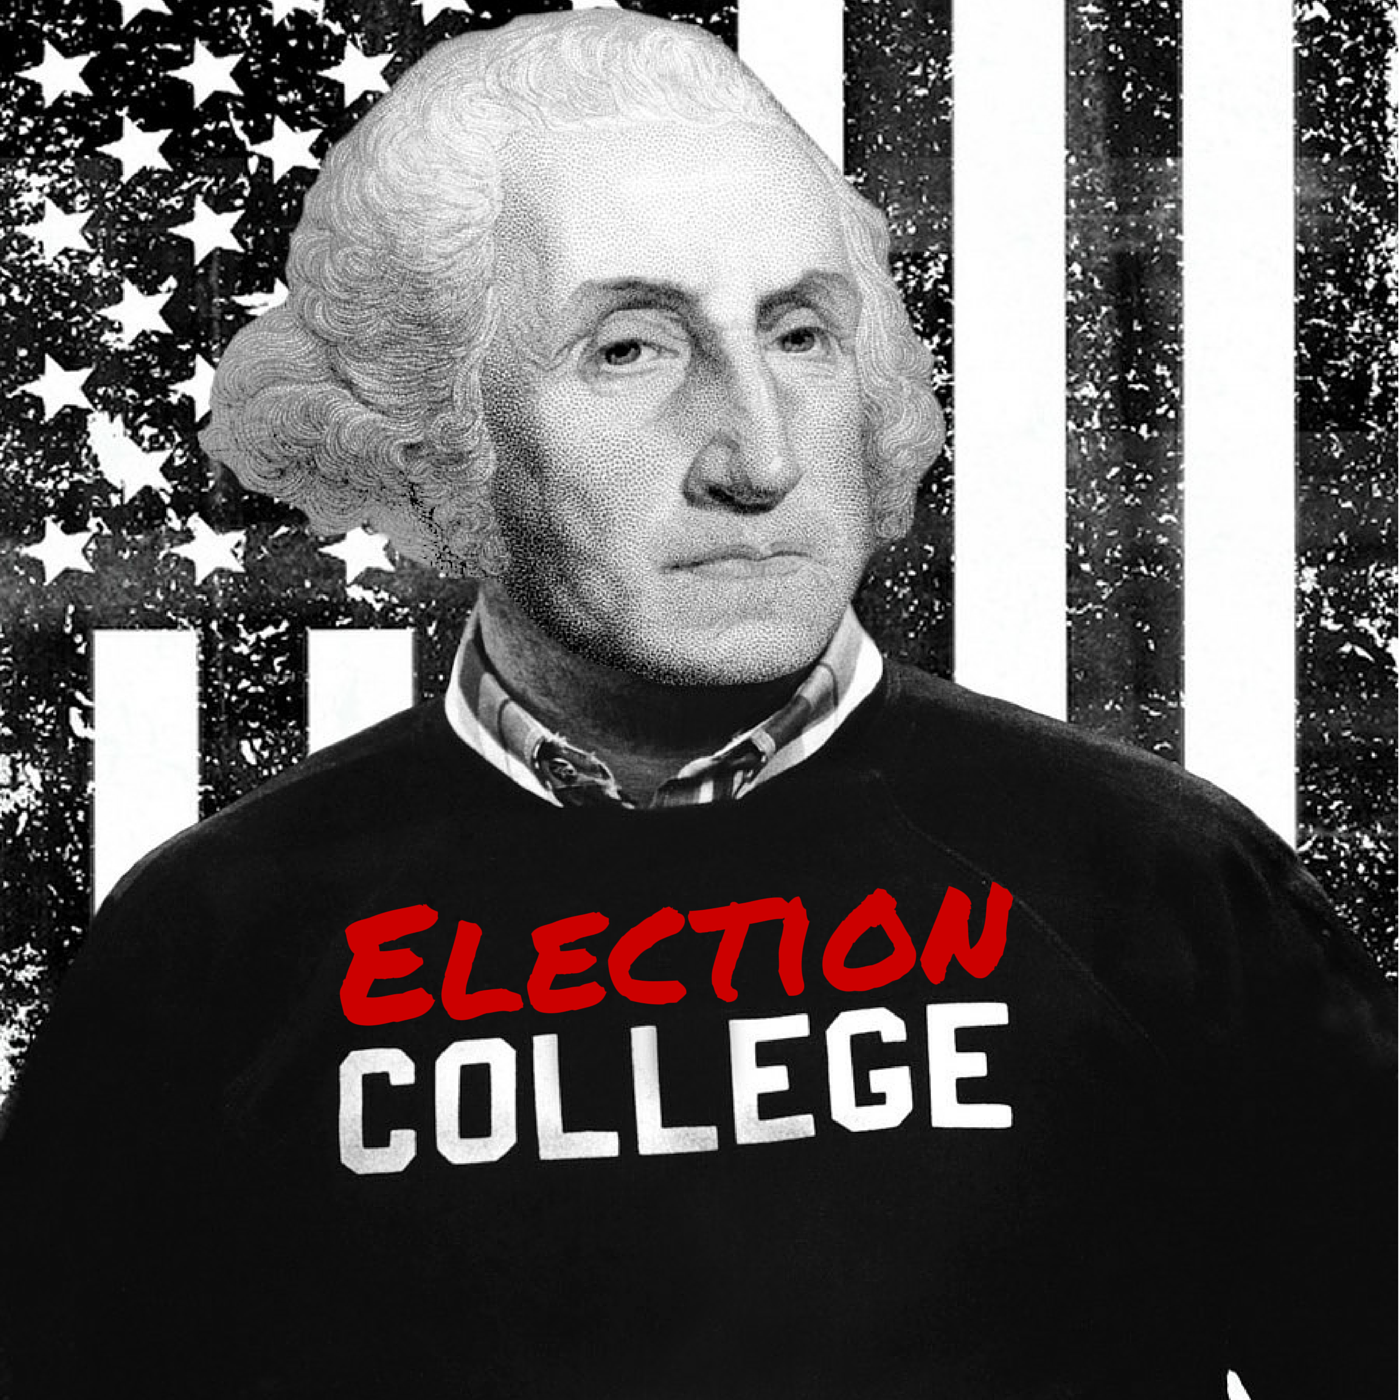 Women's Suffrage | Episode #078 | Election College: United States Presidential Election History